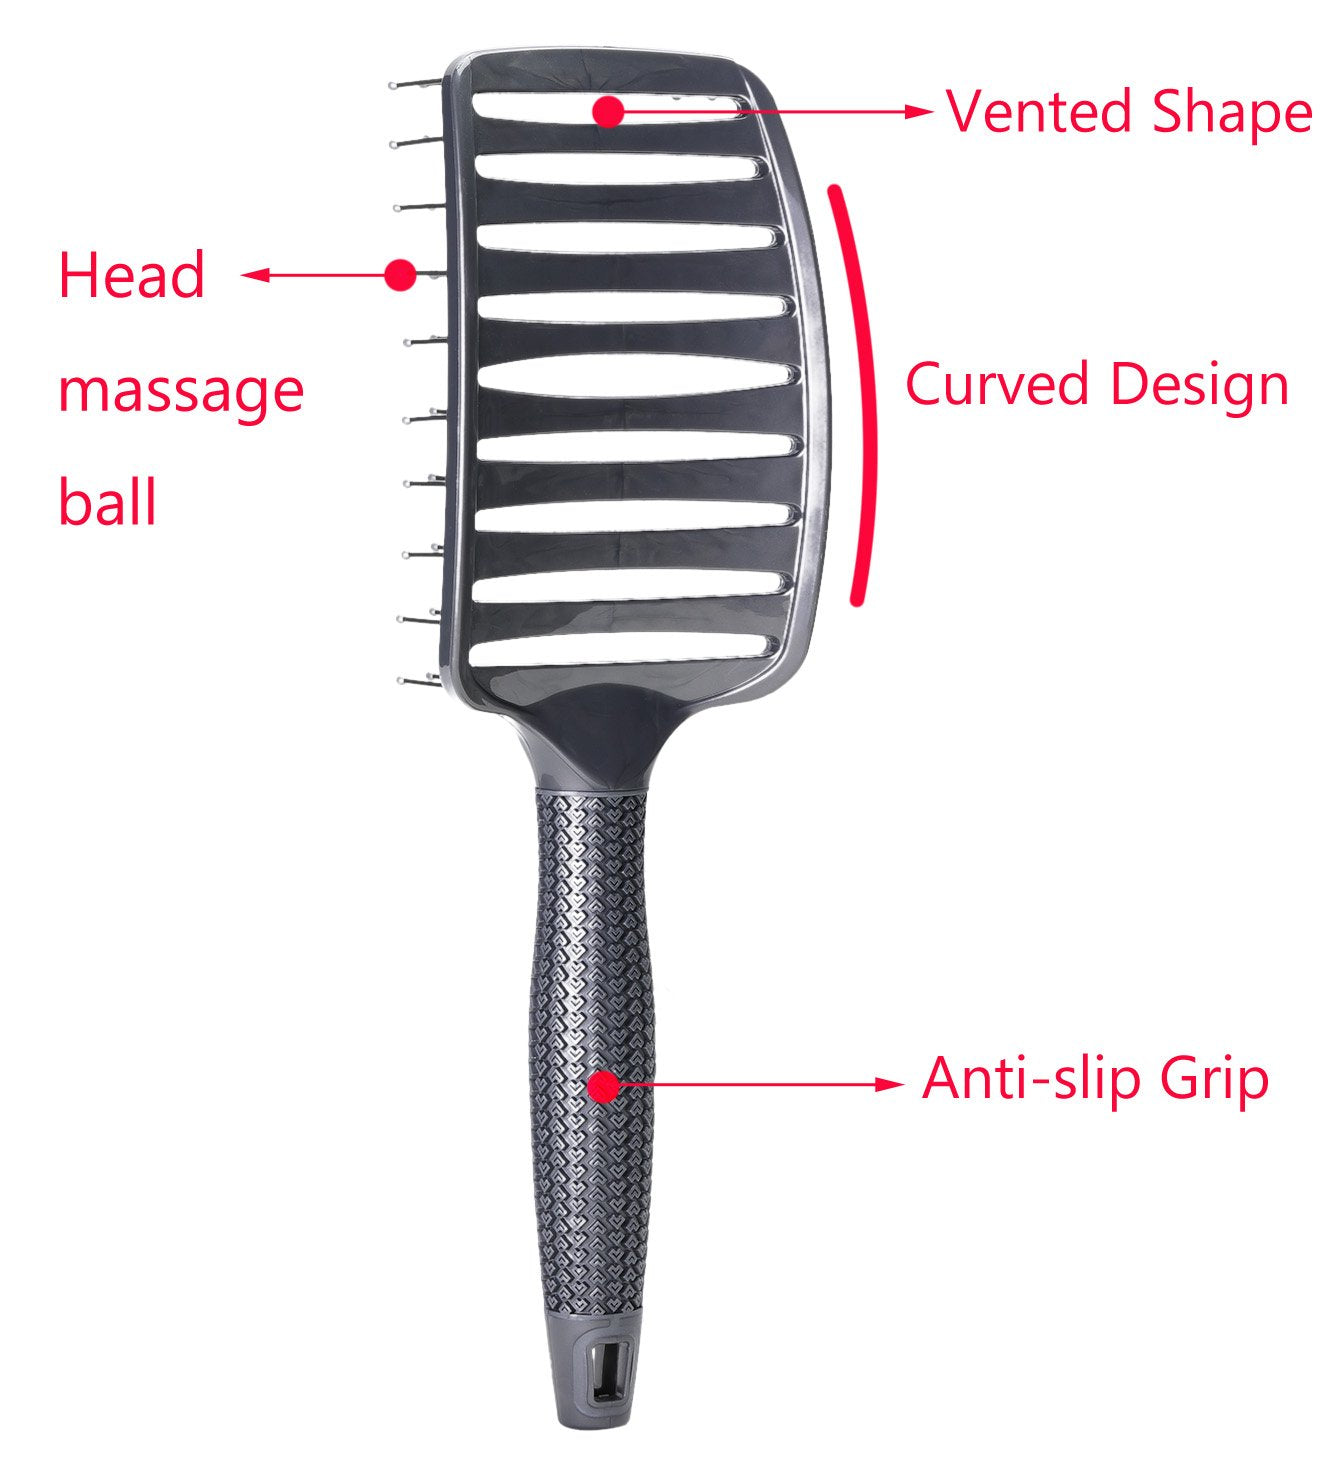 Curved Vent Brush, Barber Blow Drying Brush with Nylon Detangling Pins